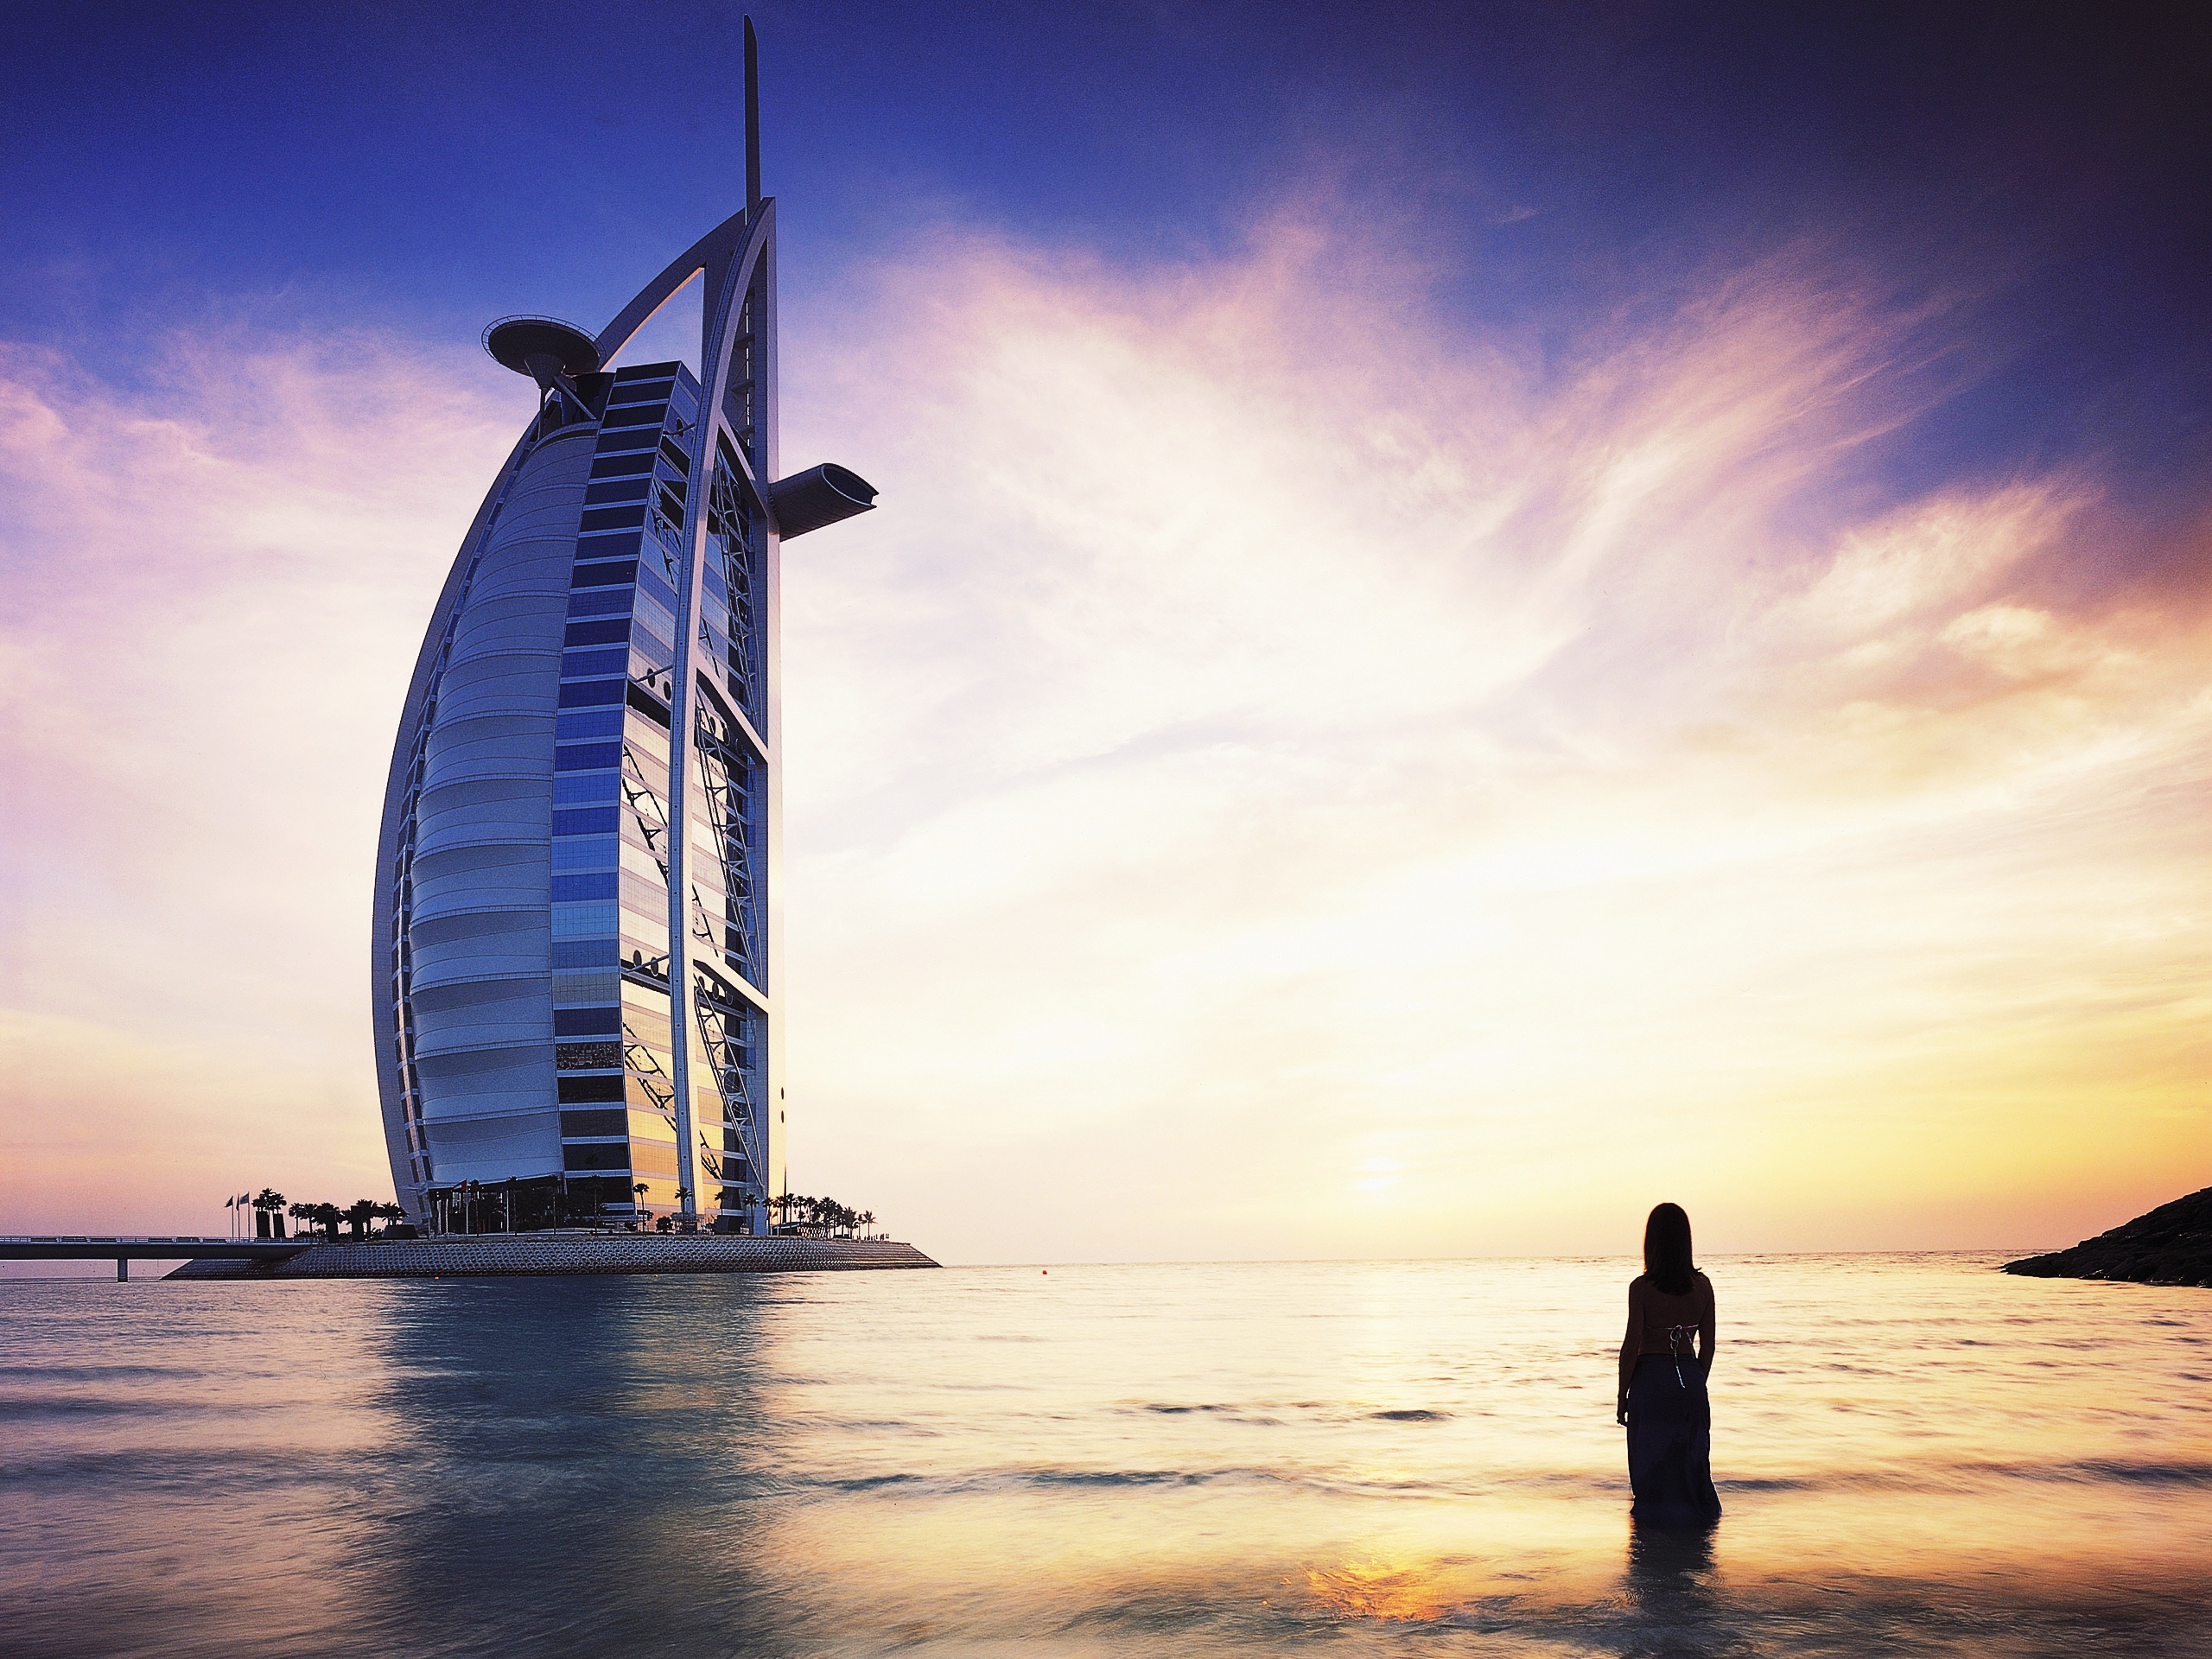 Planet dubai 4229319 2560x1600 all for desktop for Dubai burj al arab